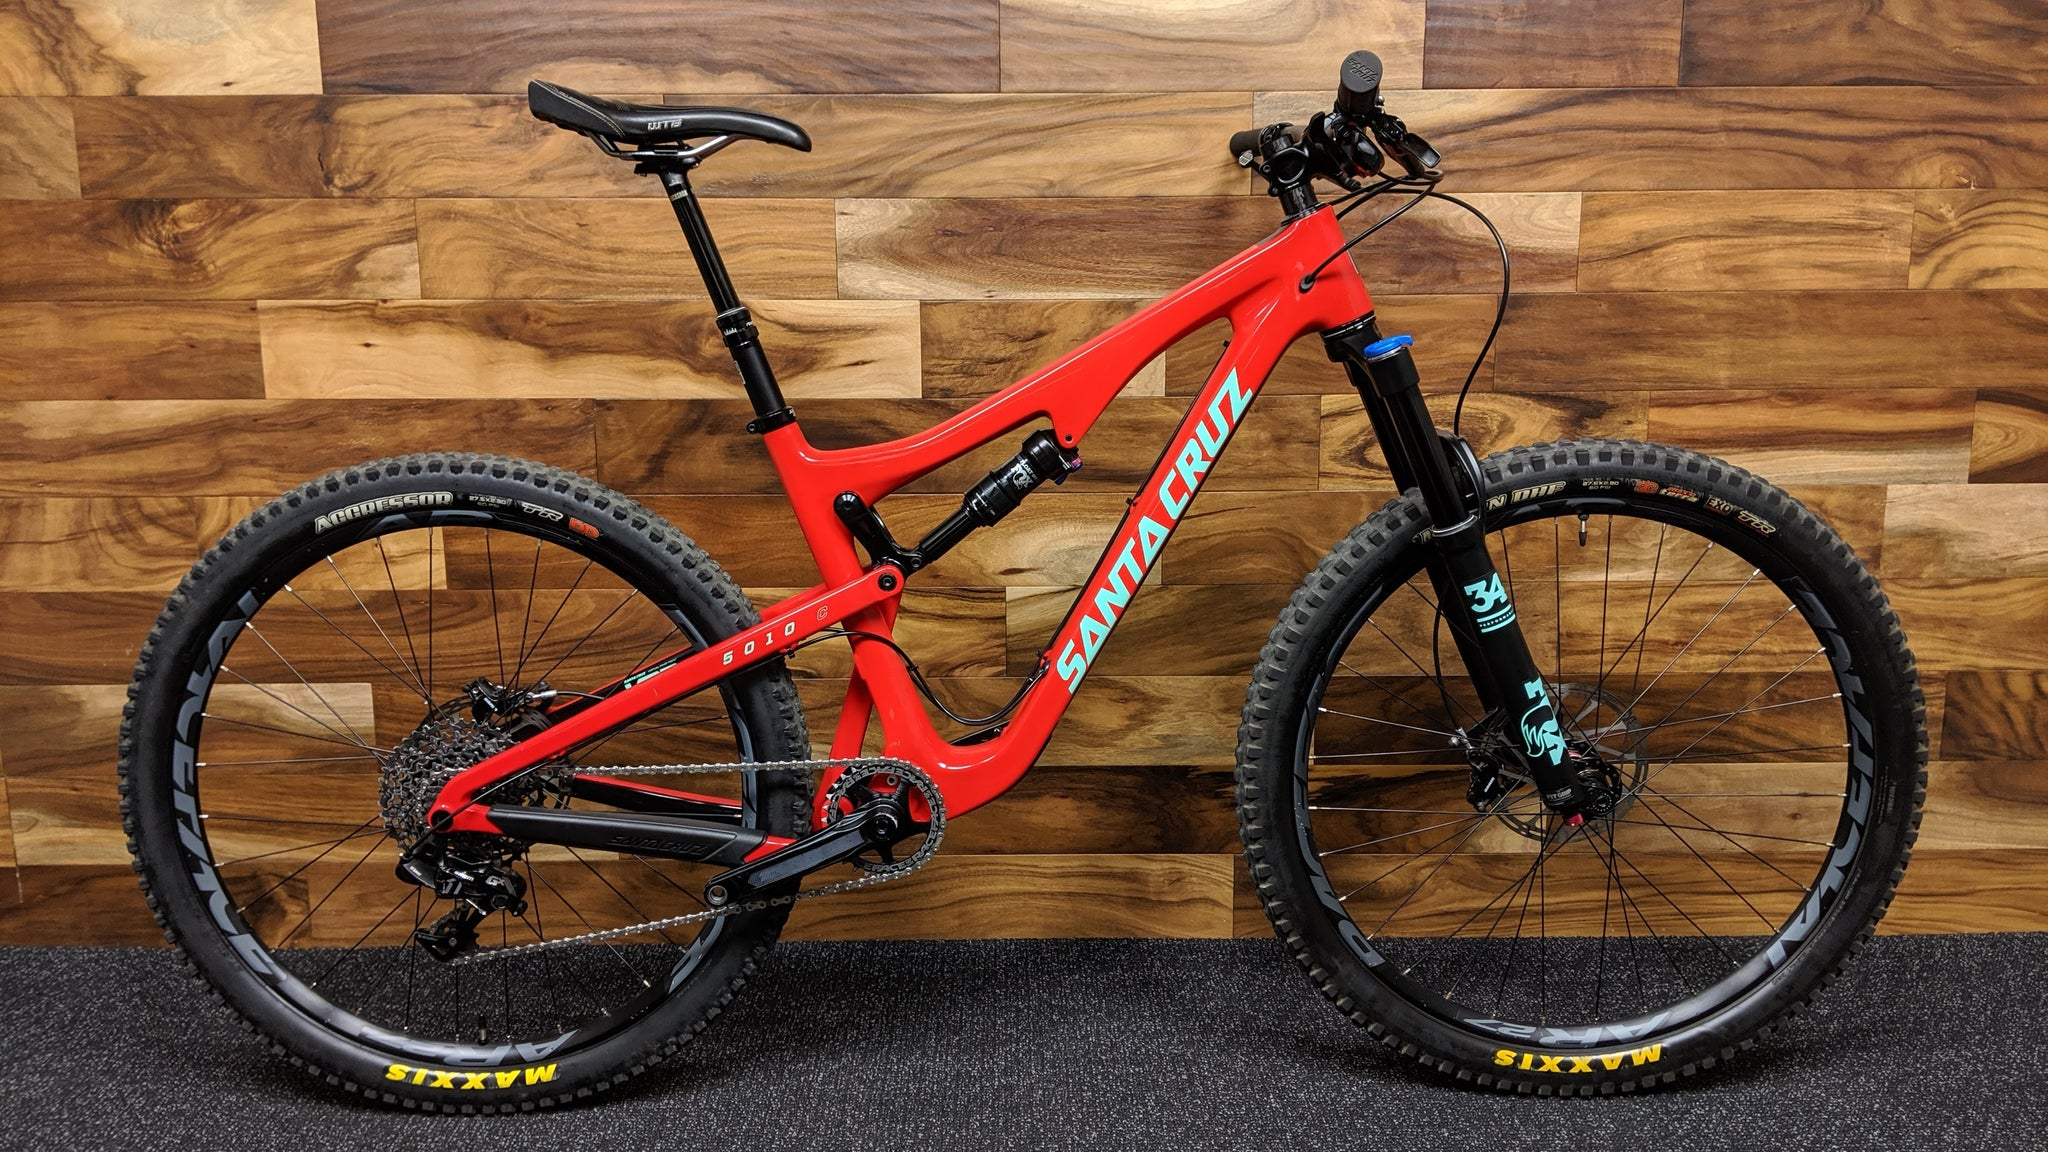 2017 SANTA CRUZ 5010 CARBON C S KIT 27.5""